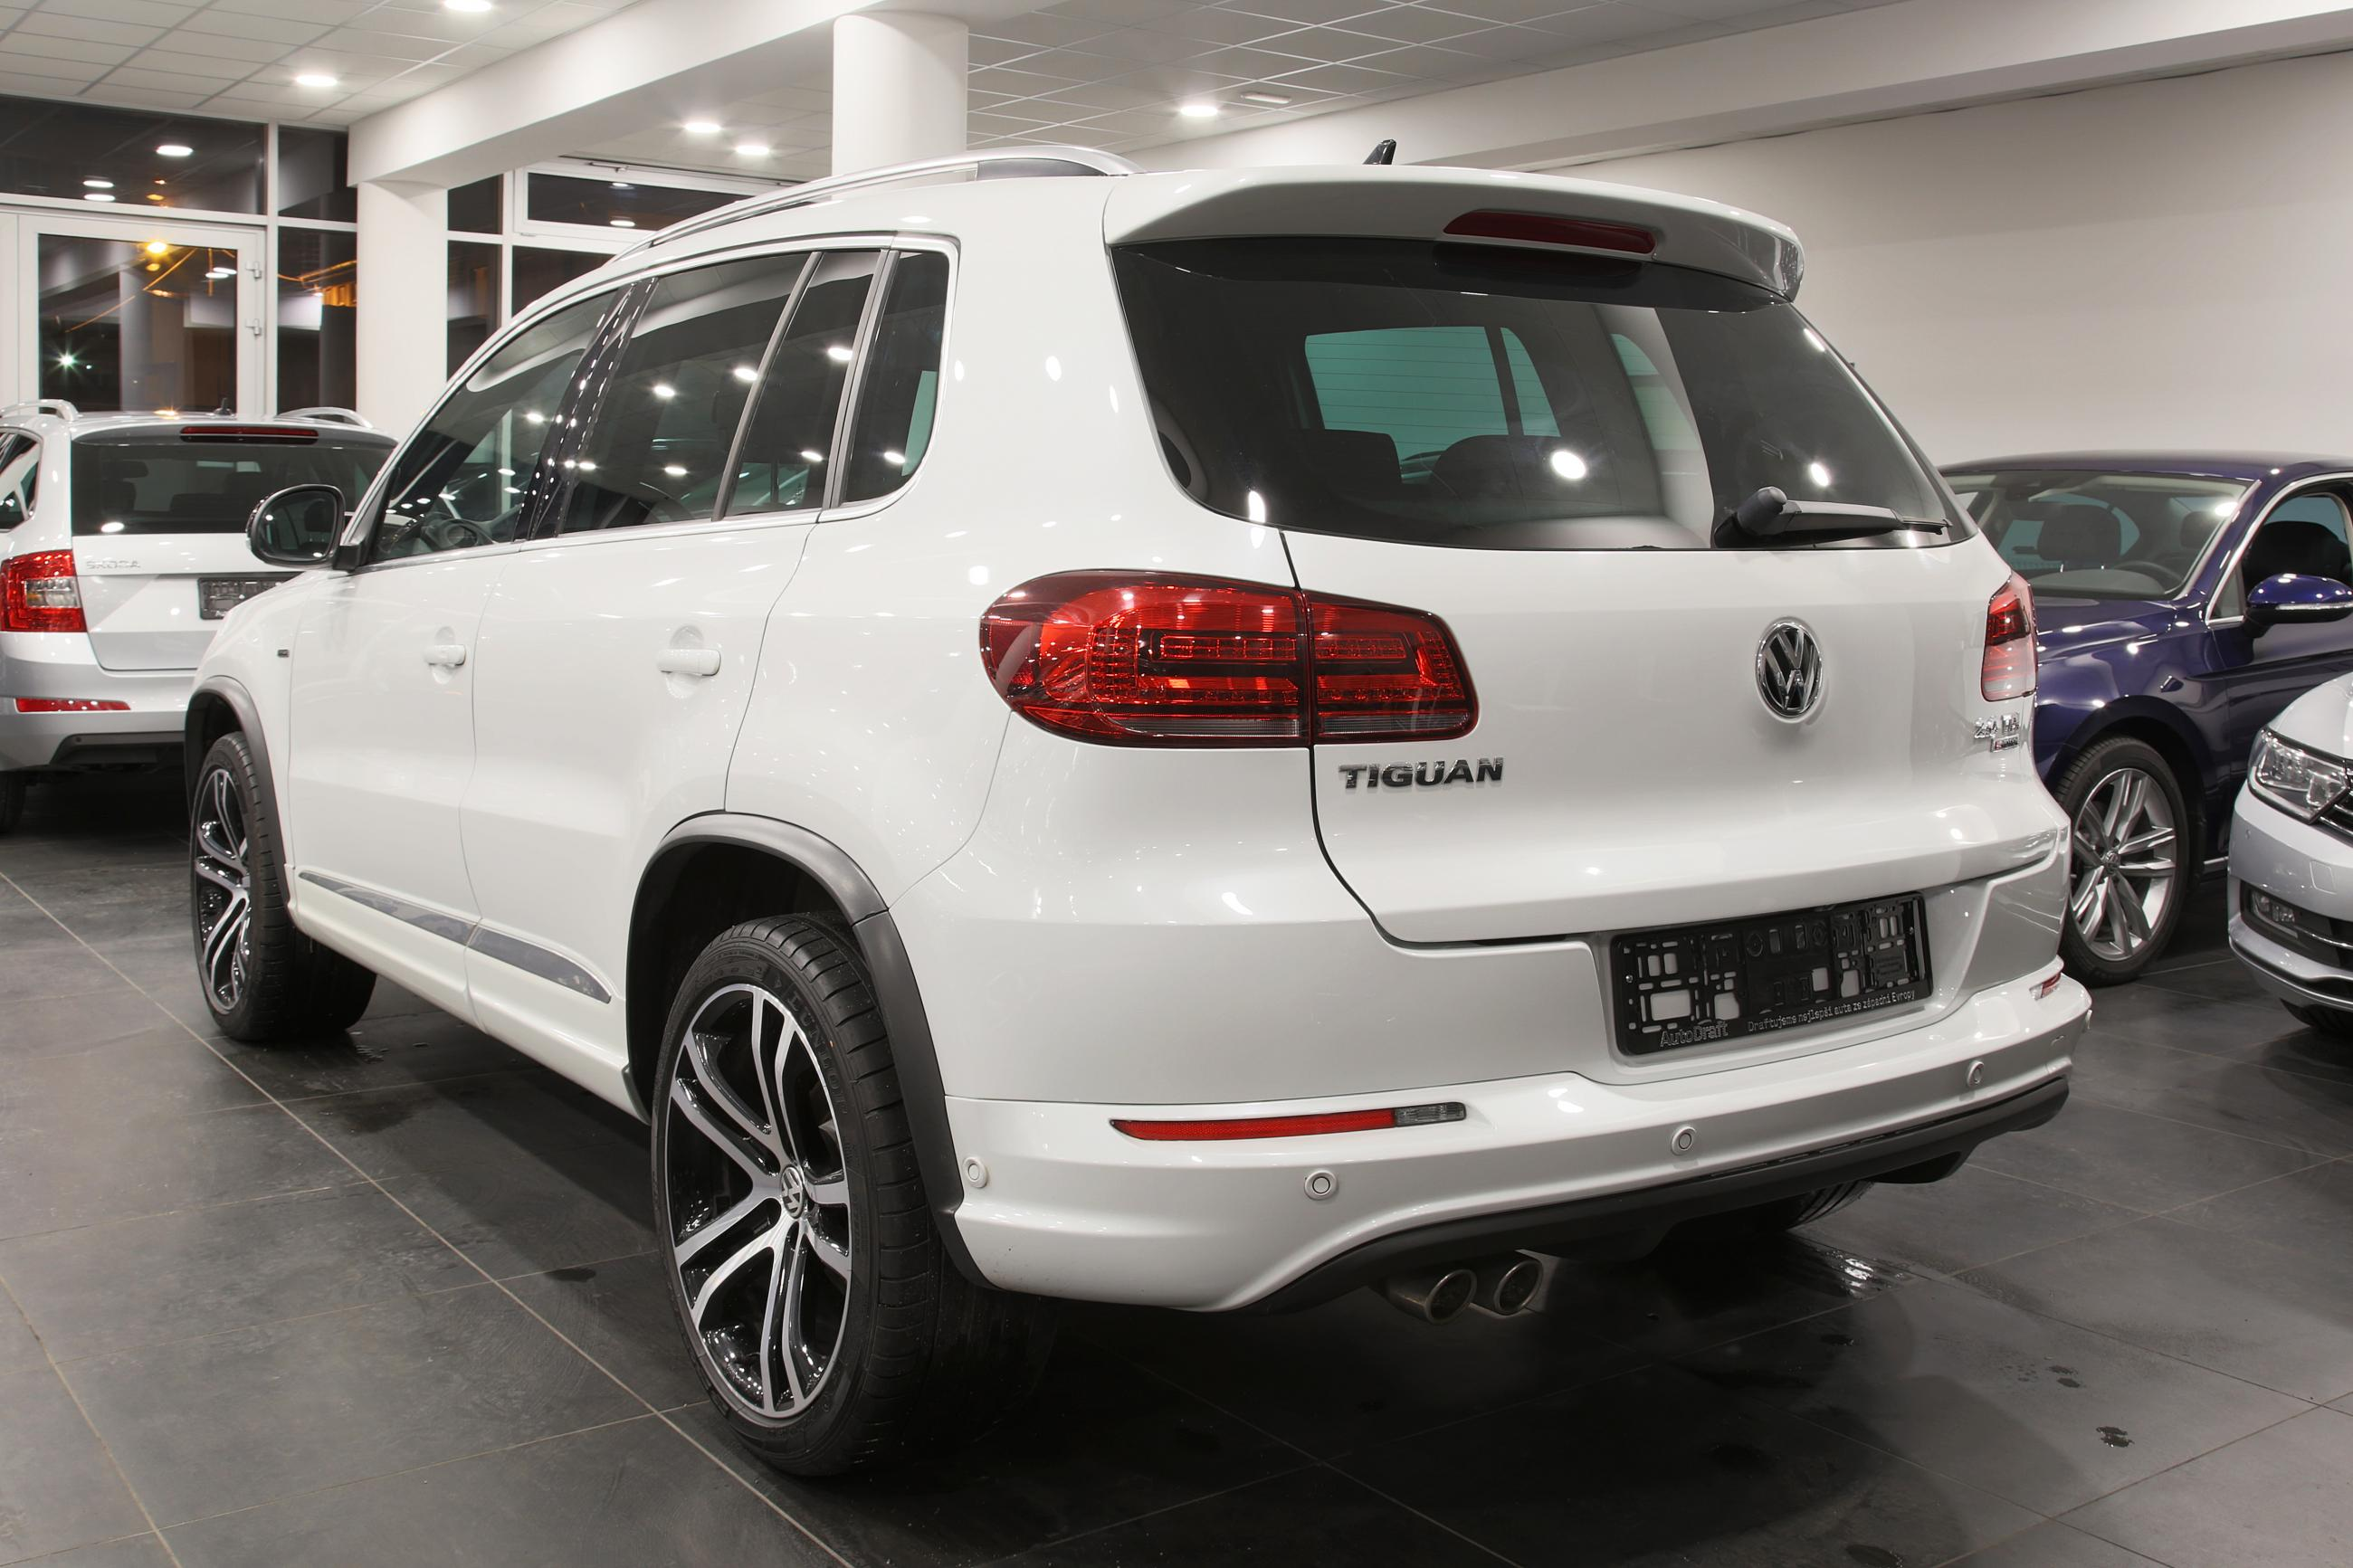 volkswagen tiguan sport style 2 0 tdi dsg cityscape 135. Black Bedroom Furniture Sets. Home Design Ideas